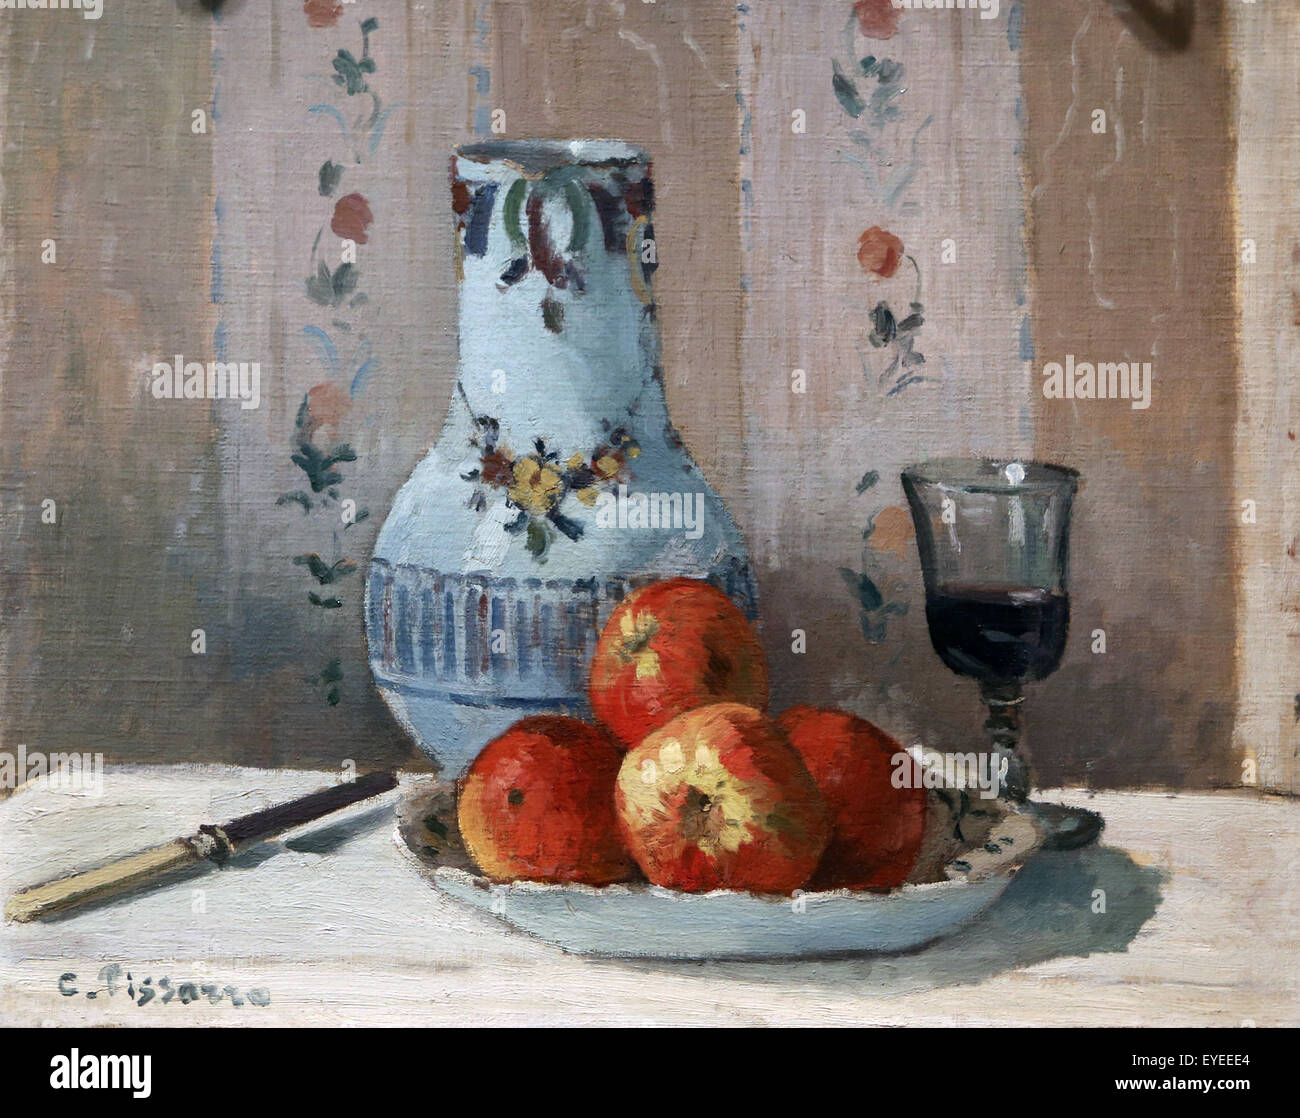 Camille Pissarro (1830-1903). French painter. Still Life with Apples and Pitcher, 1872. Oil on canvas. - Stock Image